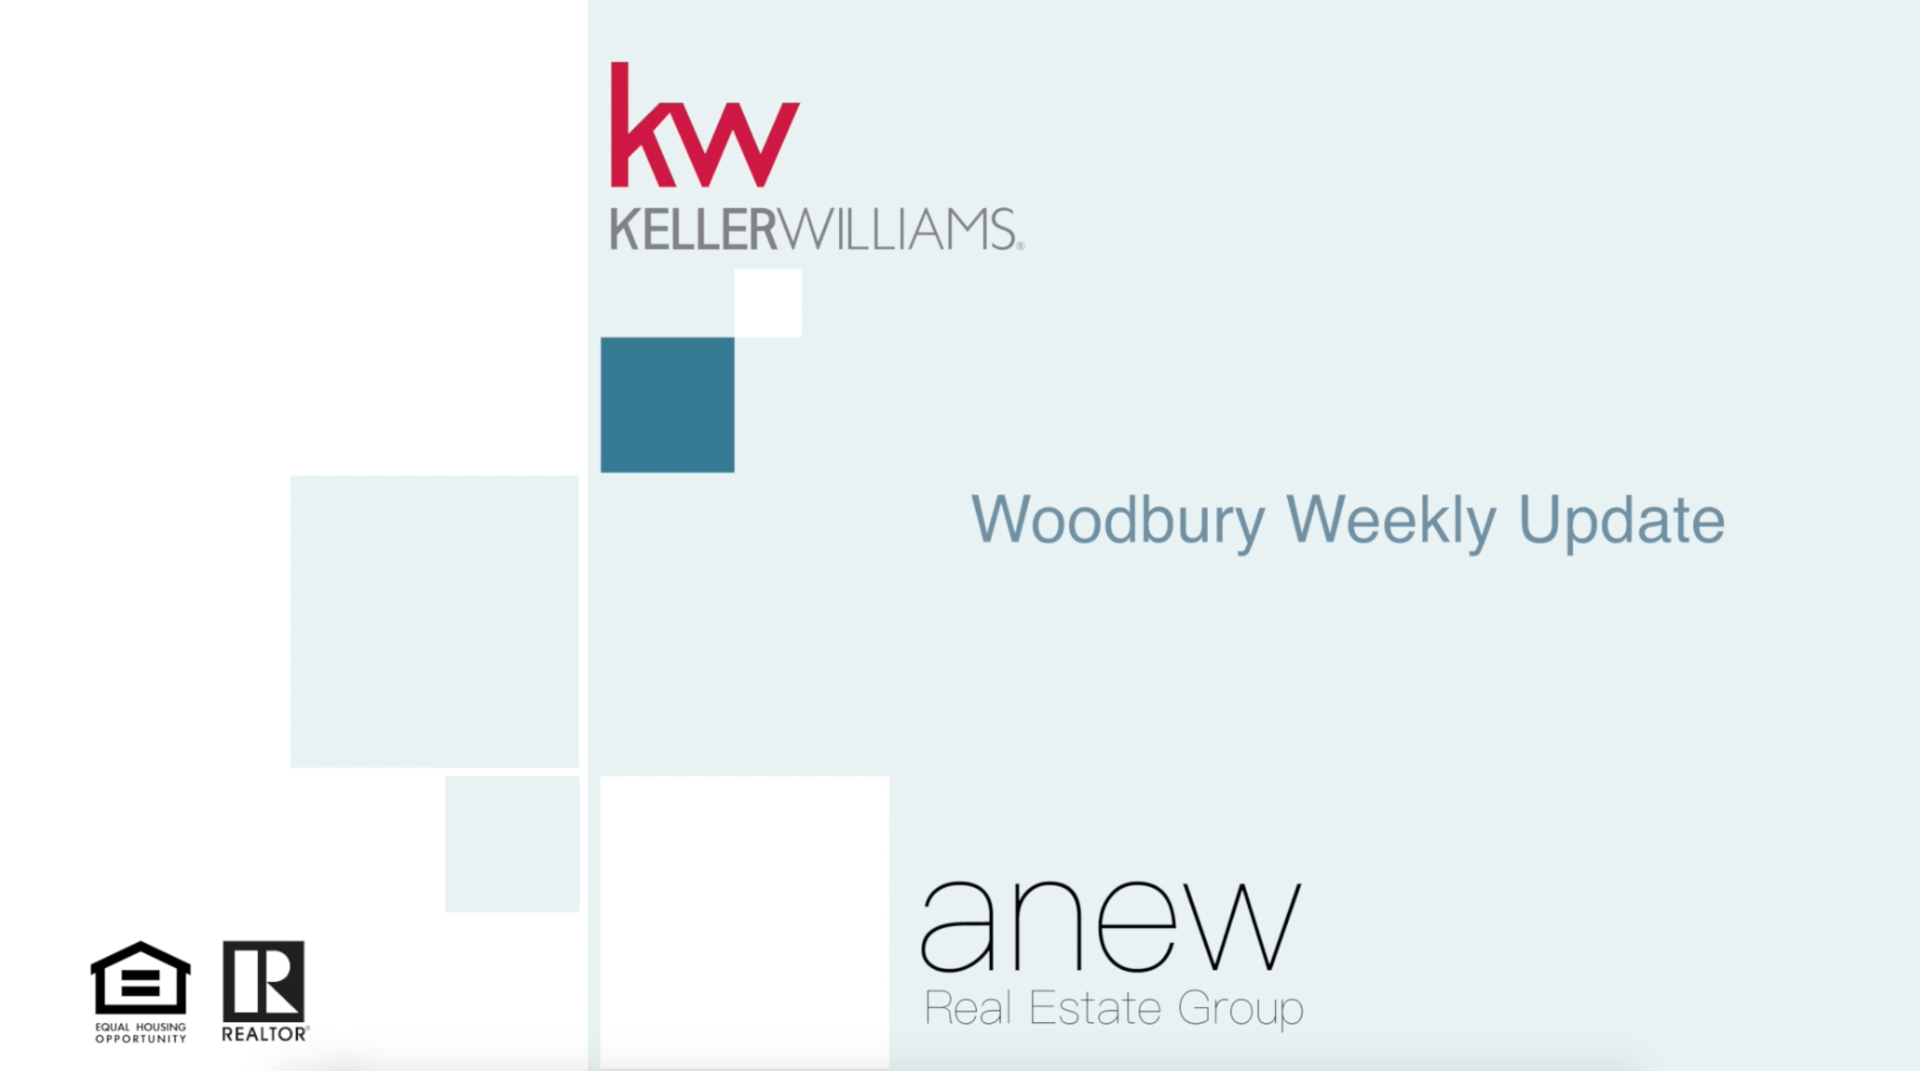 Woodbury Weekly Update for July 9th, 2018.